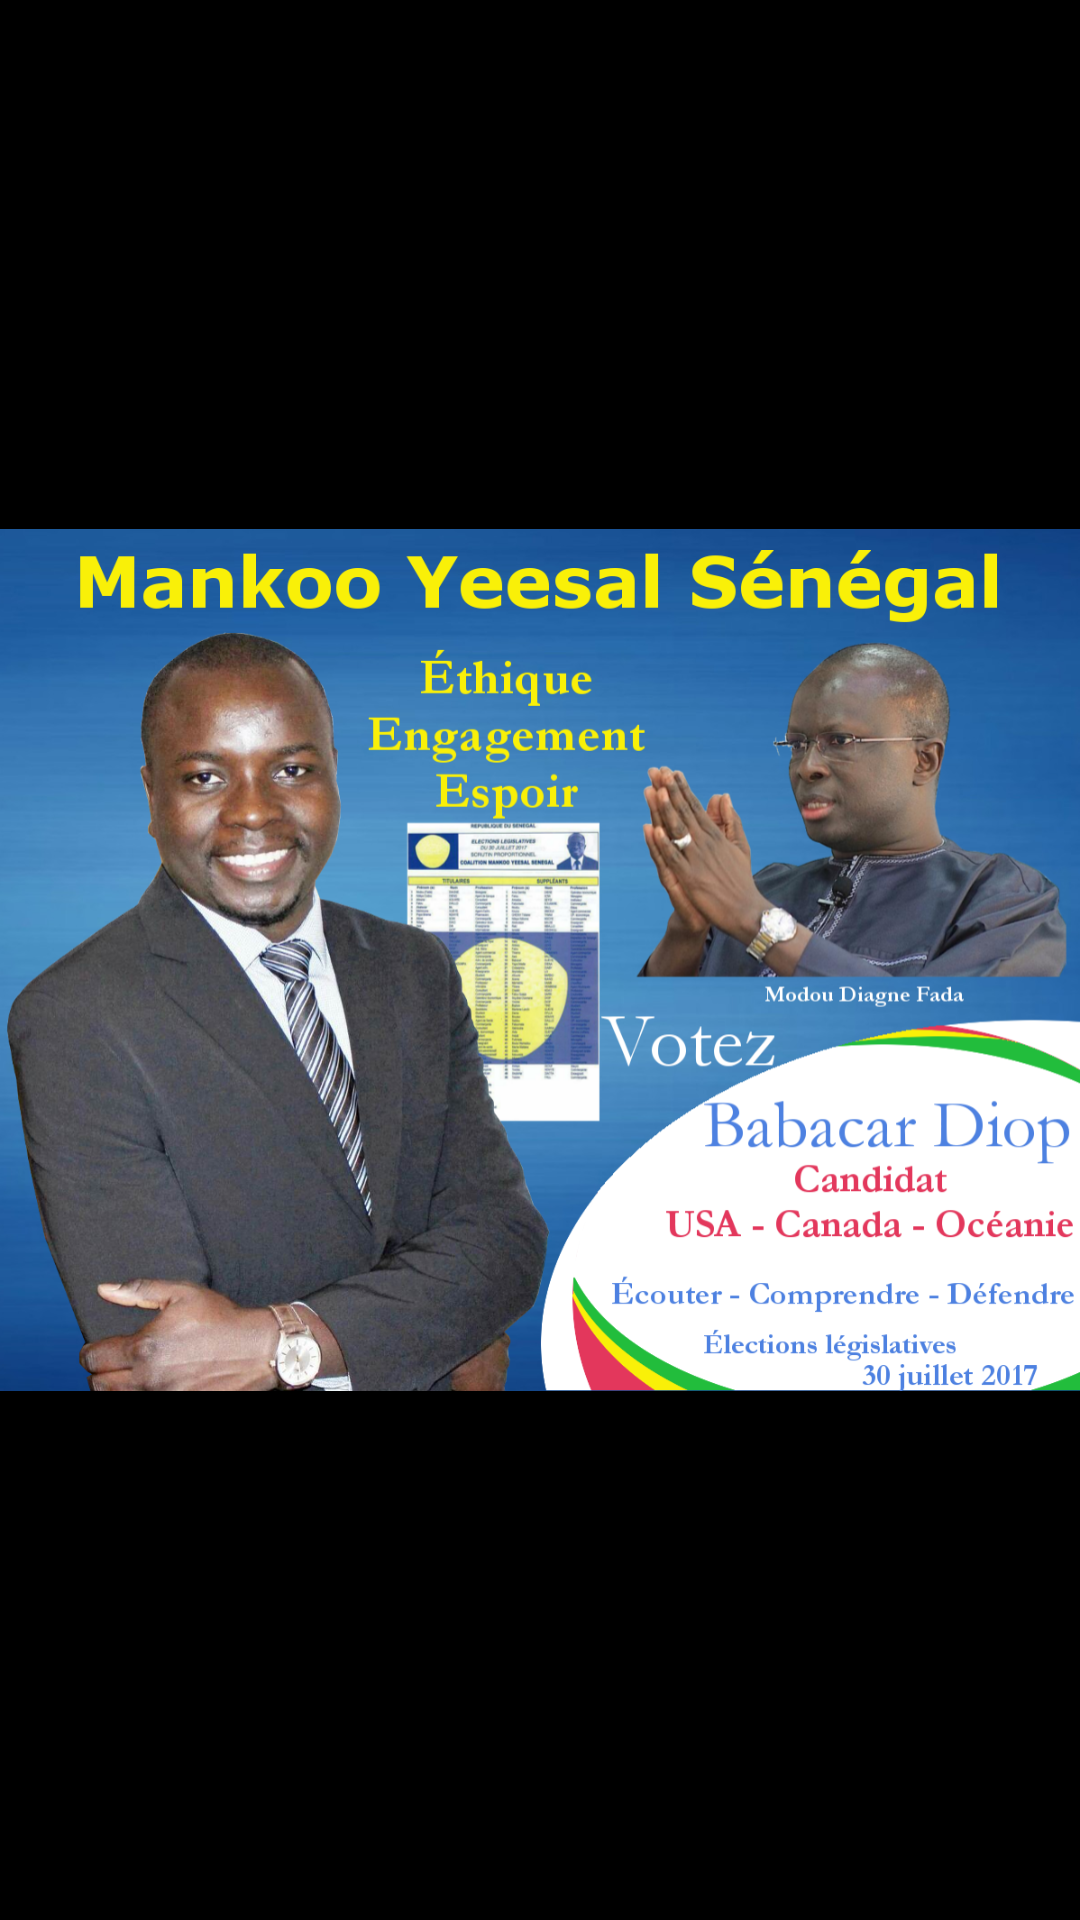 Babacar-Diop